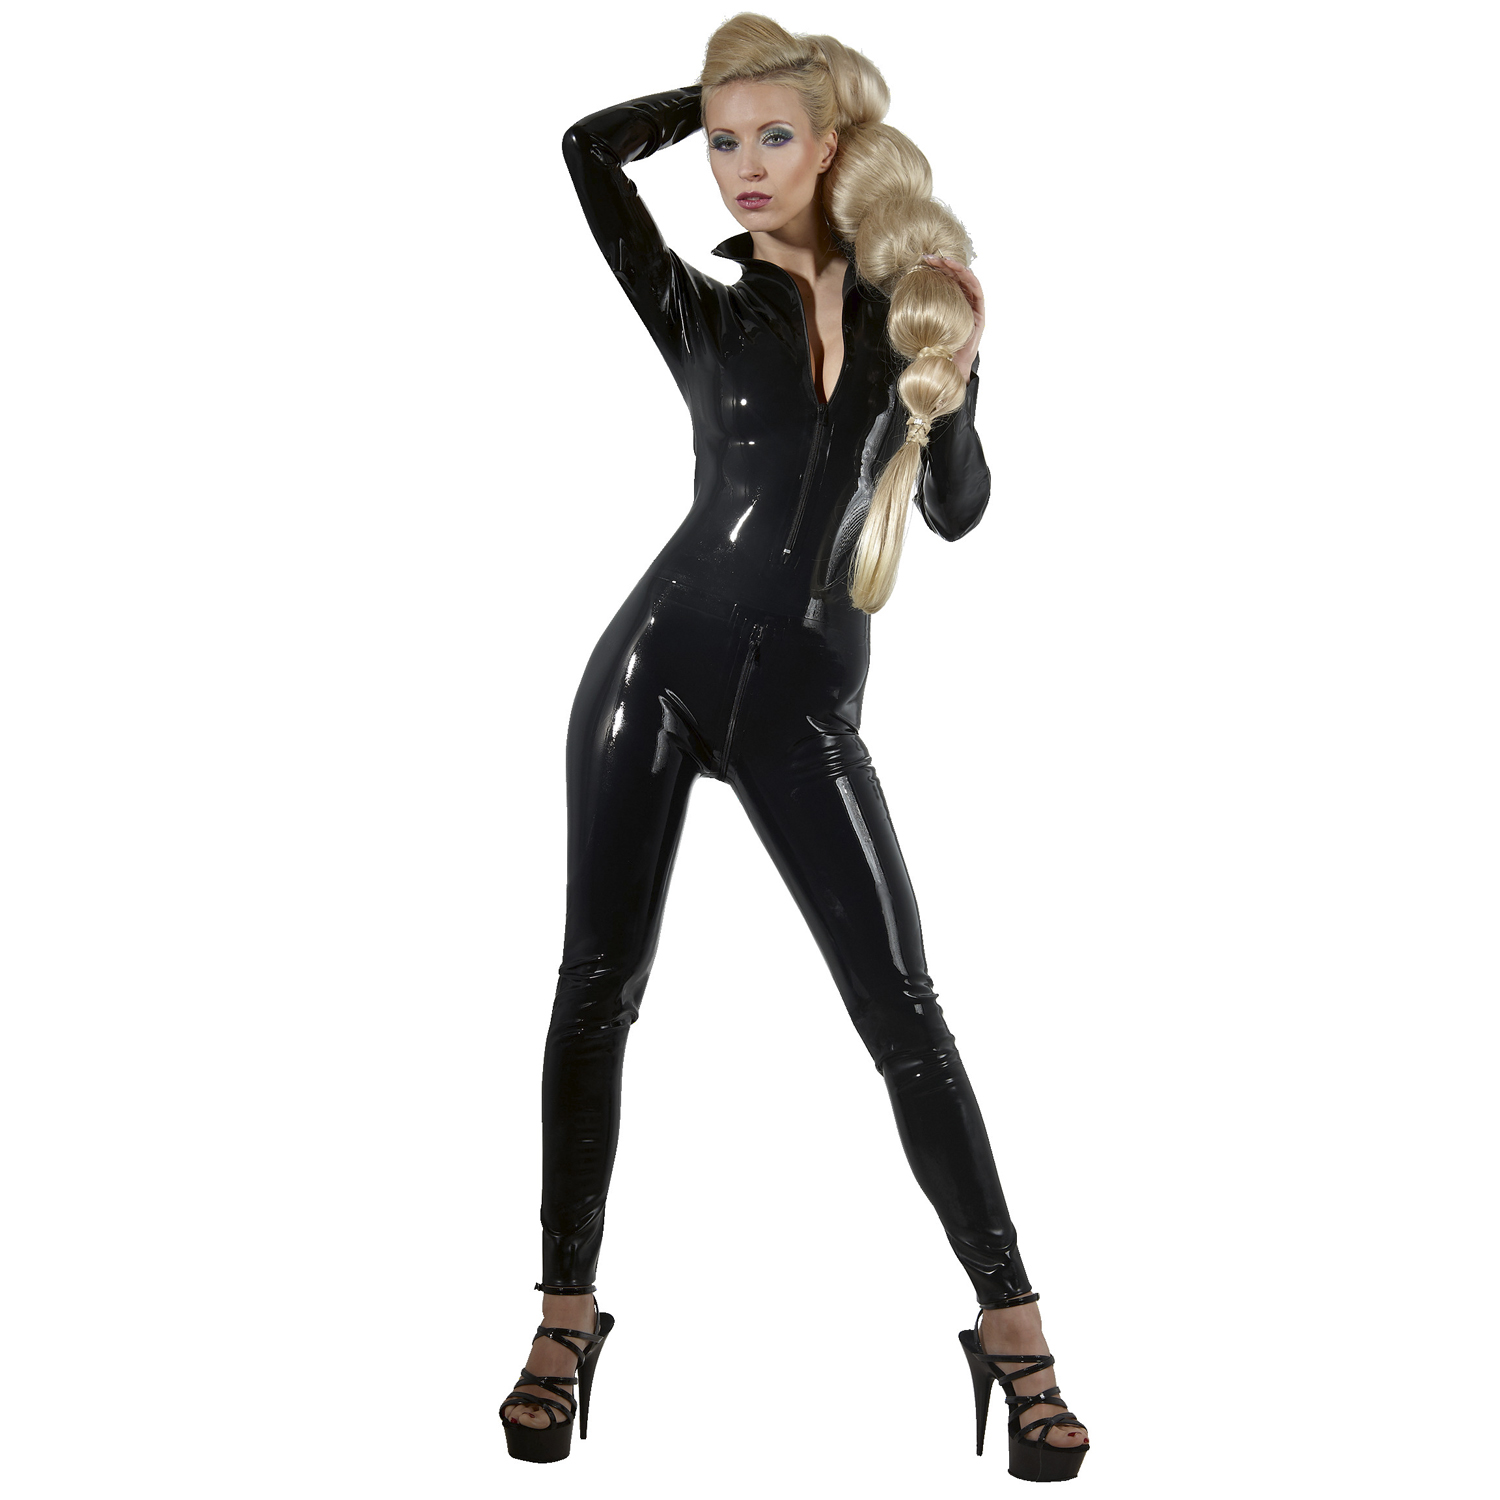 Late X Latex Catsuit med Långa Ärmar | Brands, Fetishkläder, Gummi- & Lackoutfits, Fetish Catsuits, Late X, Latexkläder, Latex | Intimast.se - Sexleksaker